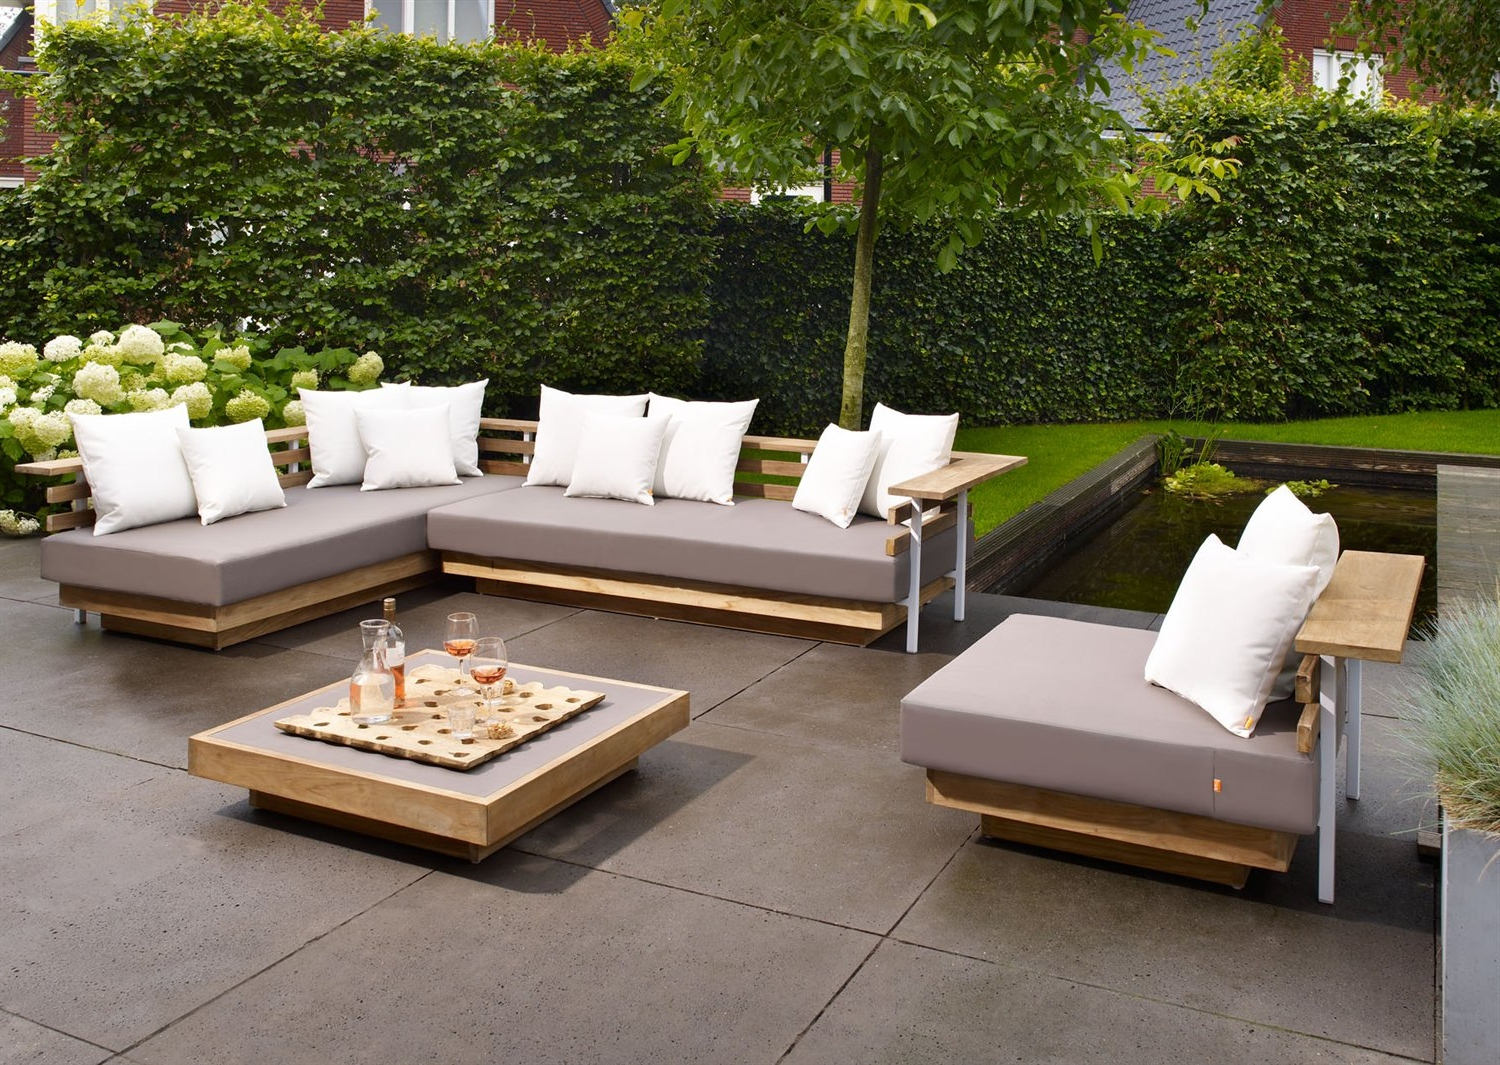 Incroyable Beautiful Affordable Nice Design Metal And Wood Outdoor Lounge With Grey  Sofas Can Metal Outdoor Lounge